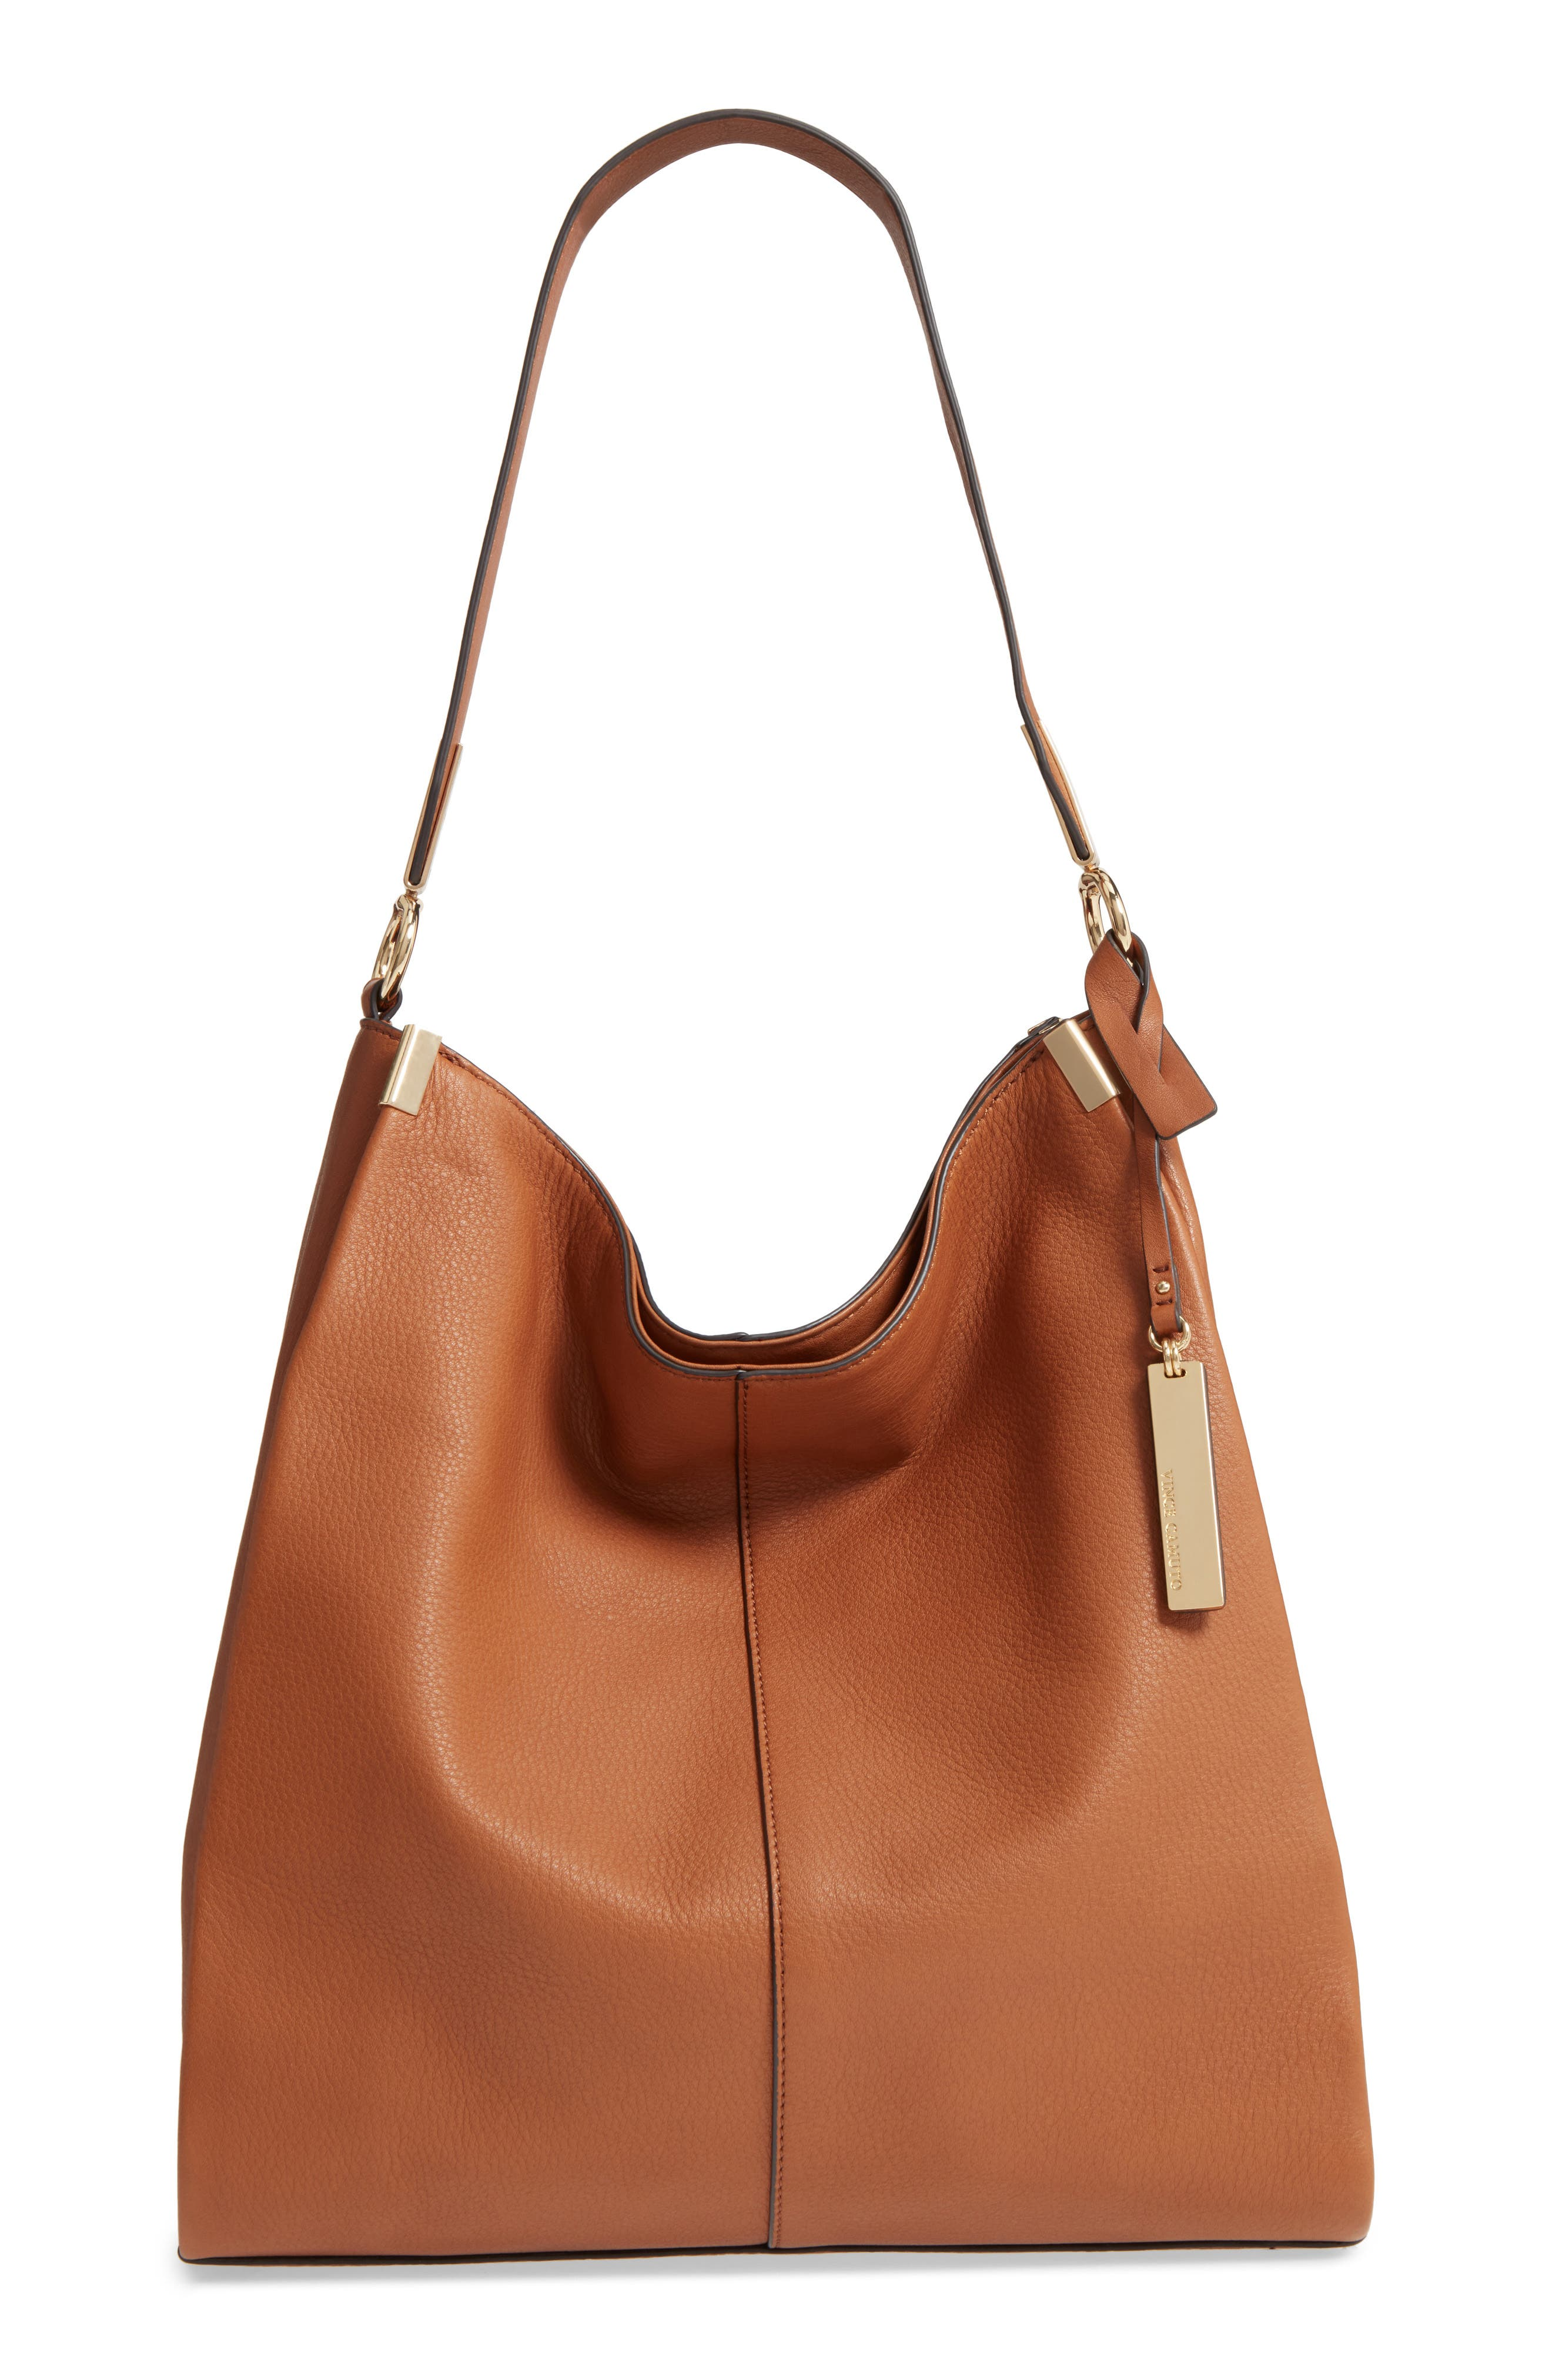 Alternate Image 1 Selected - Vince Camuto Rosen Leather Hobo